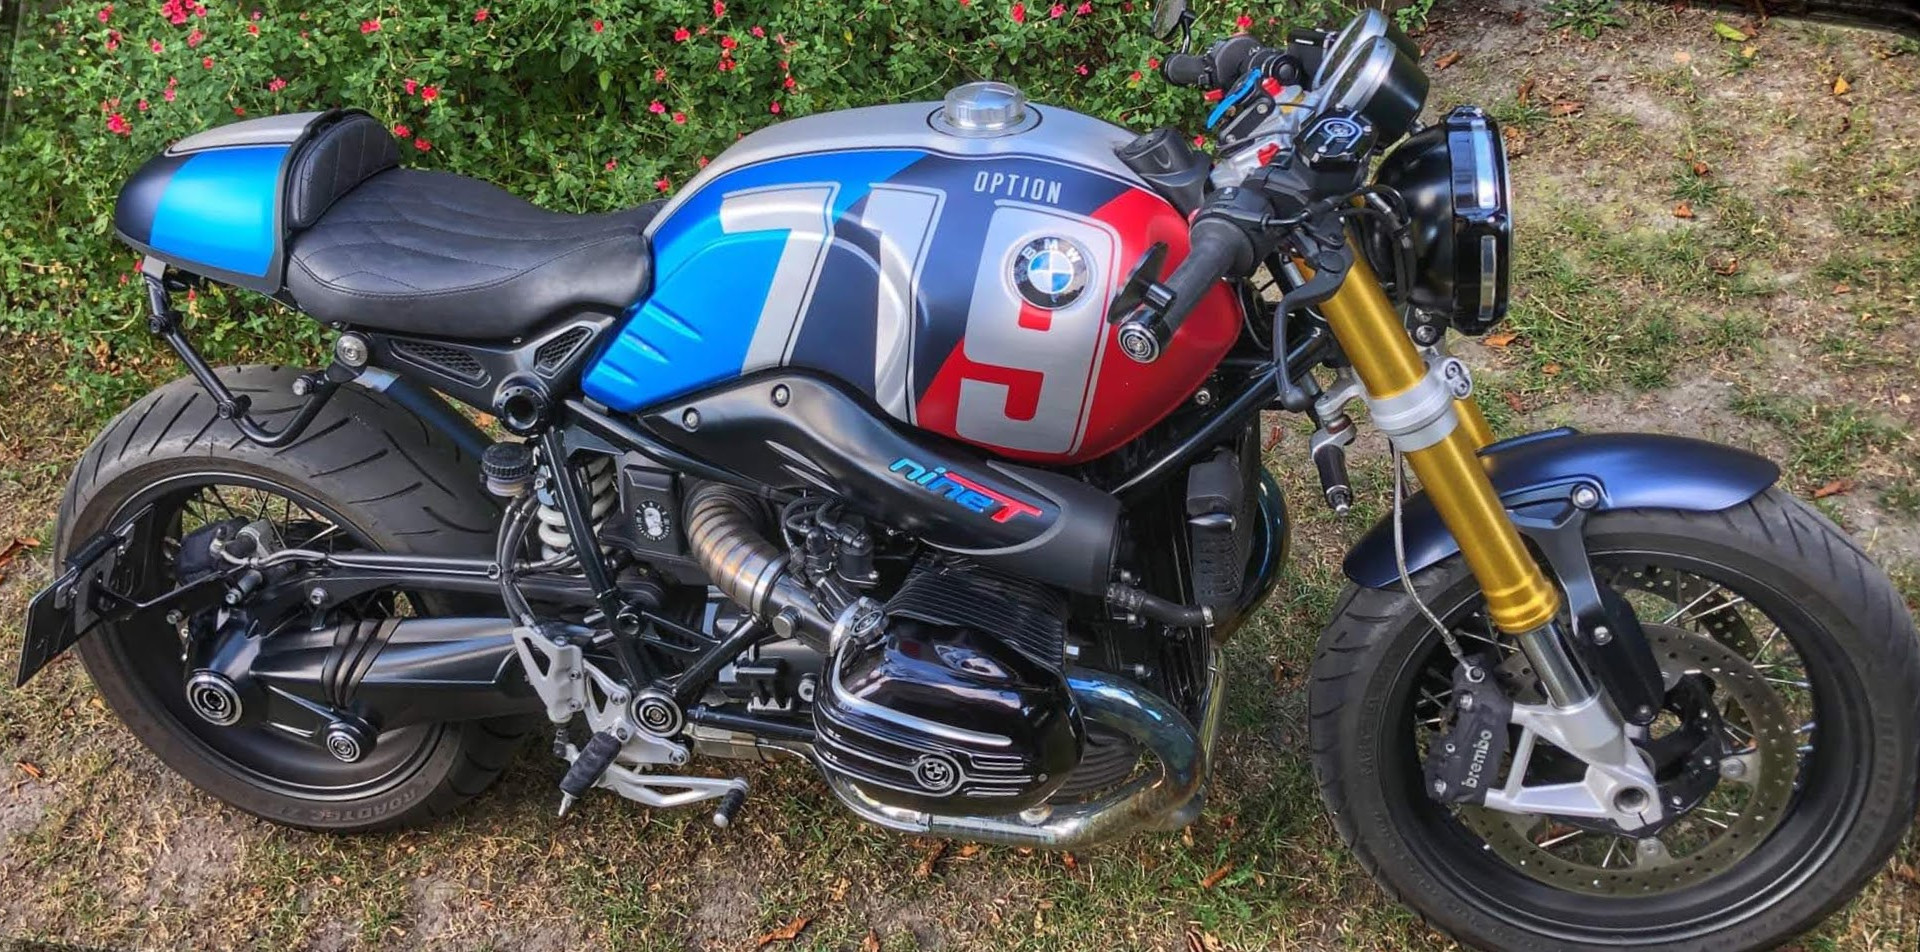 BMW R Nine-T Option 719